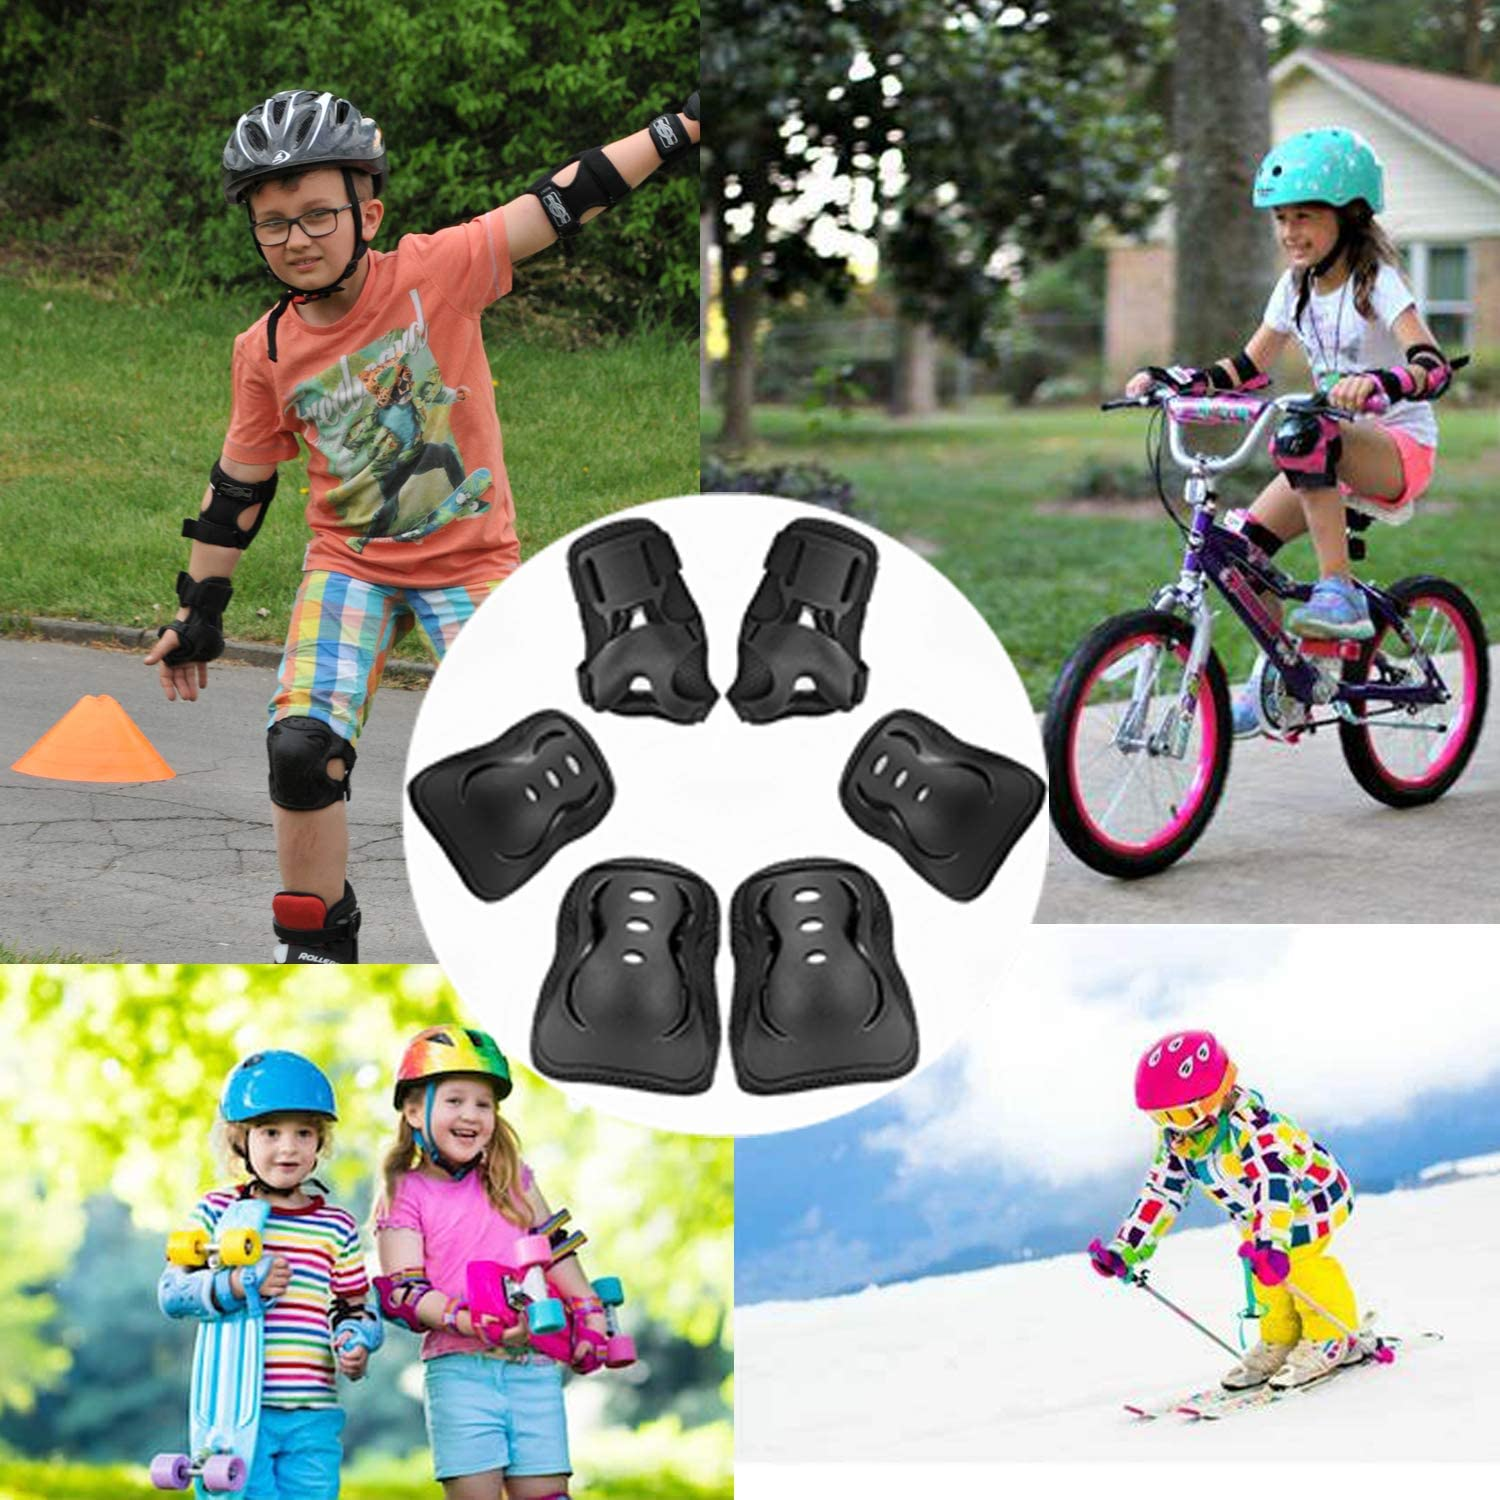 Protective Gear Set for Toddler Knee Pads Elbow Pads Wrist Guards for Skateboarding Inline Rollerblading Roller Skating Cycling Bike BMX Bicycle Scooter 3 in 1(3-8 Years) Nascence Knee Pads for Kids